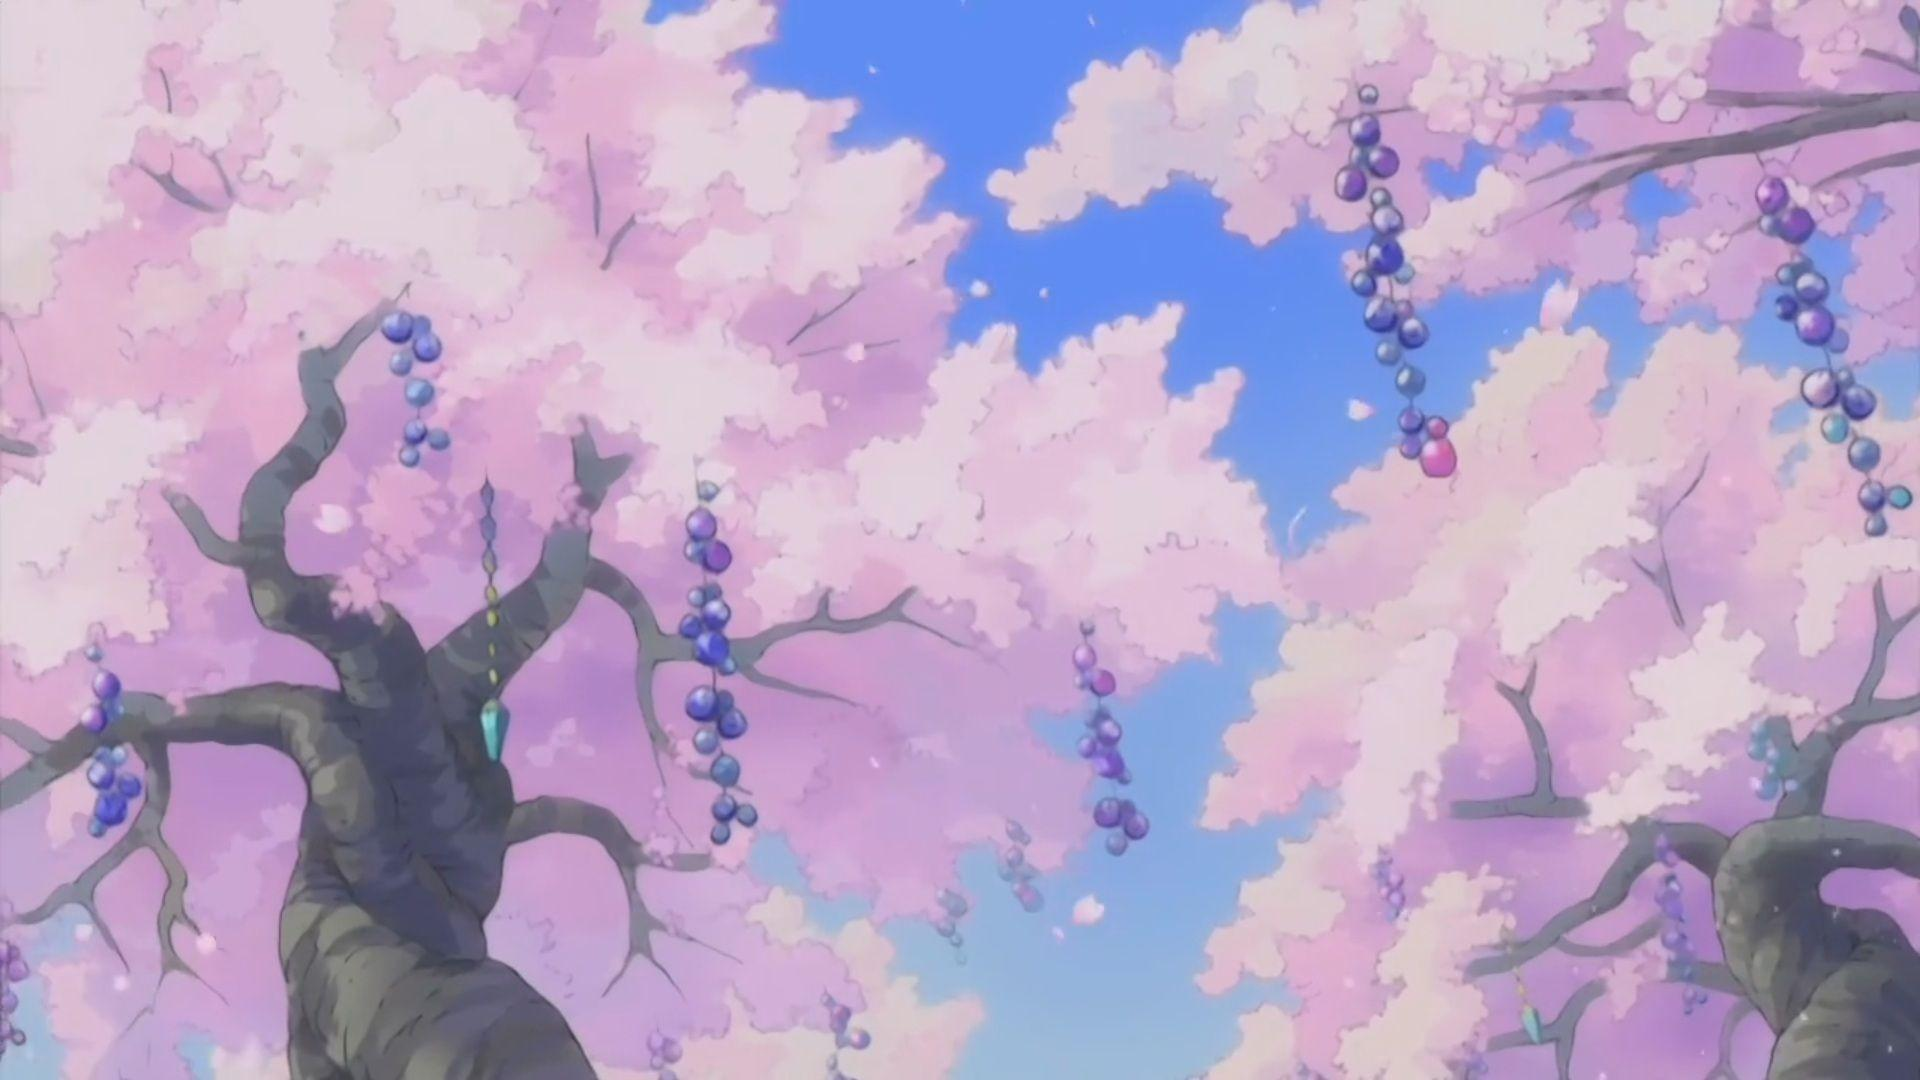 Pink Anime Scenery Wallpapers